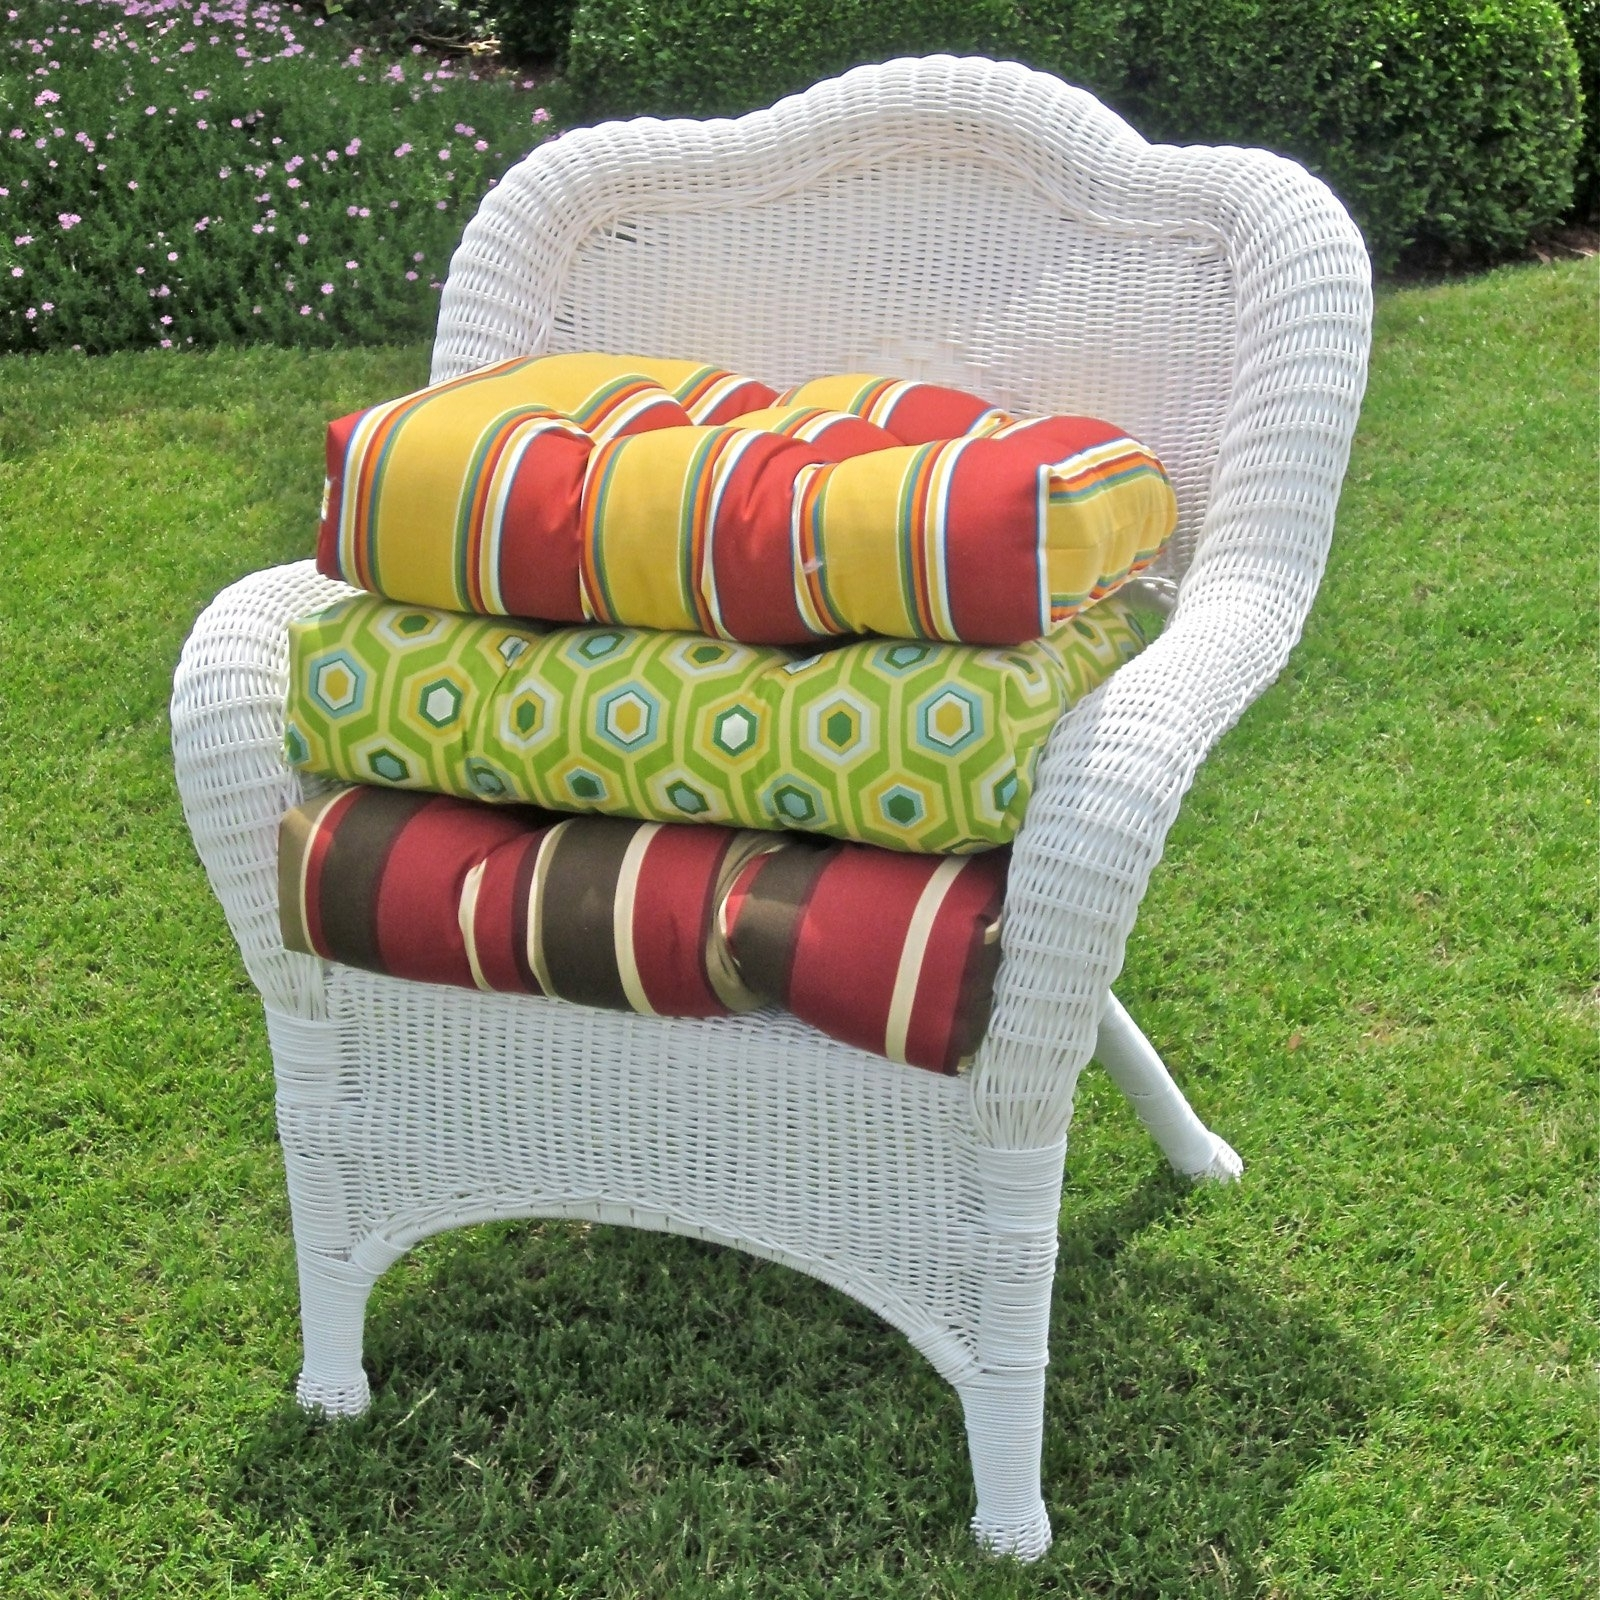 Blazing Needles 19 X 19 In Outdoor Wicker Chair Cushion Hayneedle Pertaining To Outdoor Wicker Furniture Cushions Warmth Outdoor Wicker Furniture Cushions